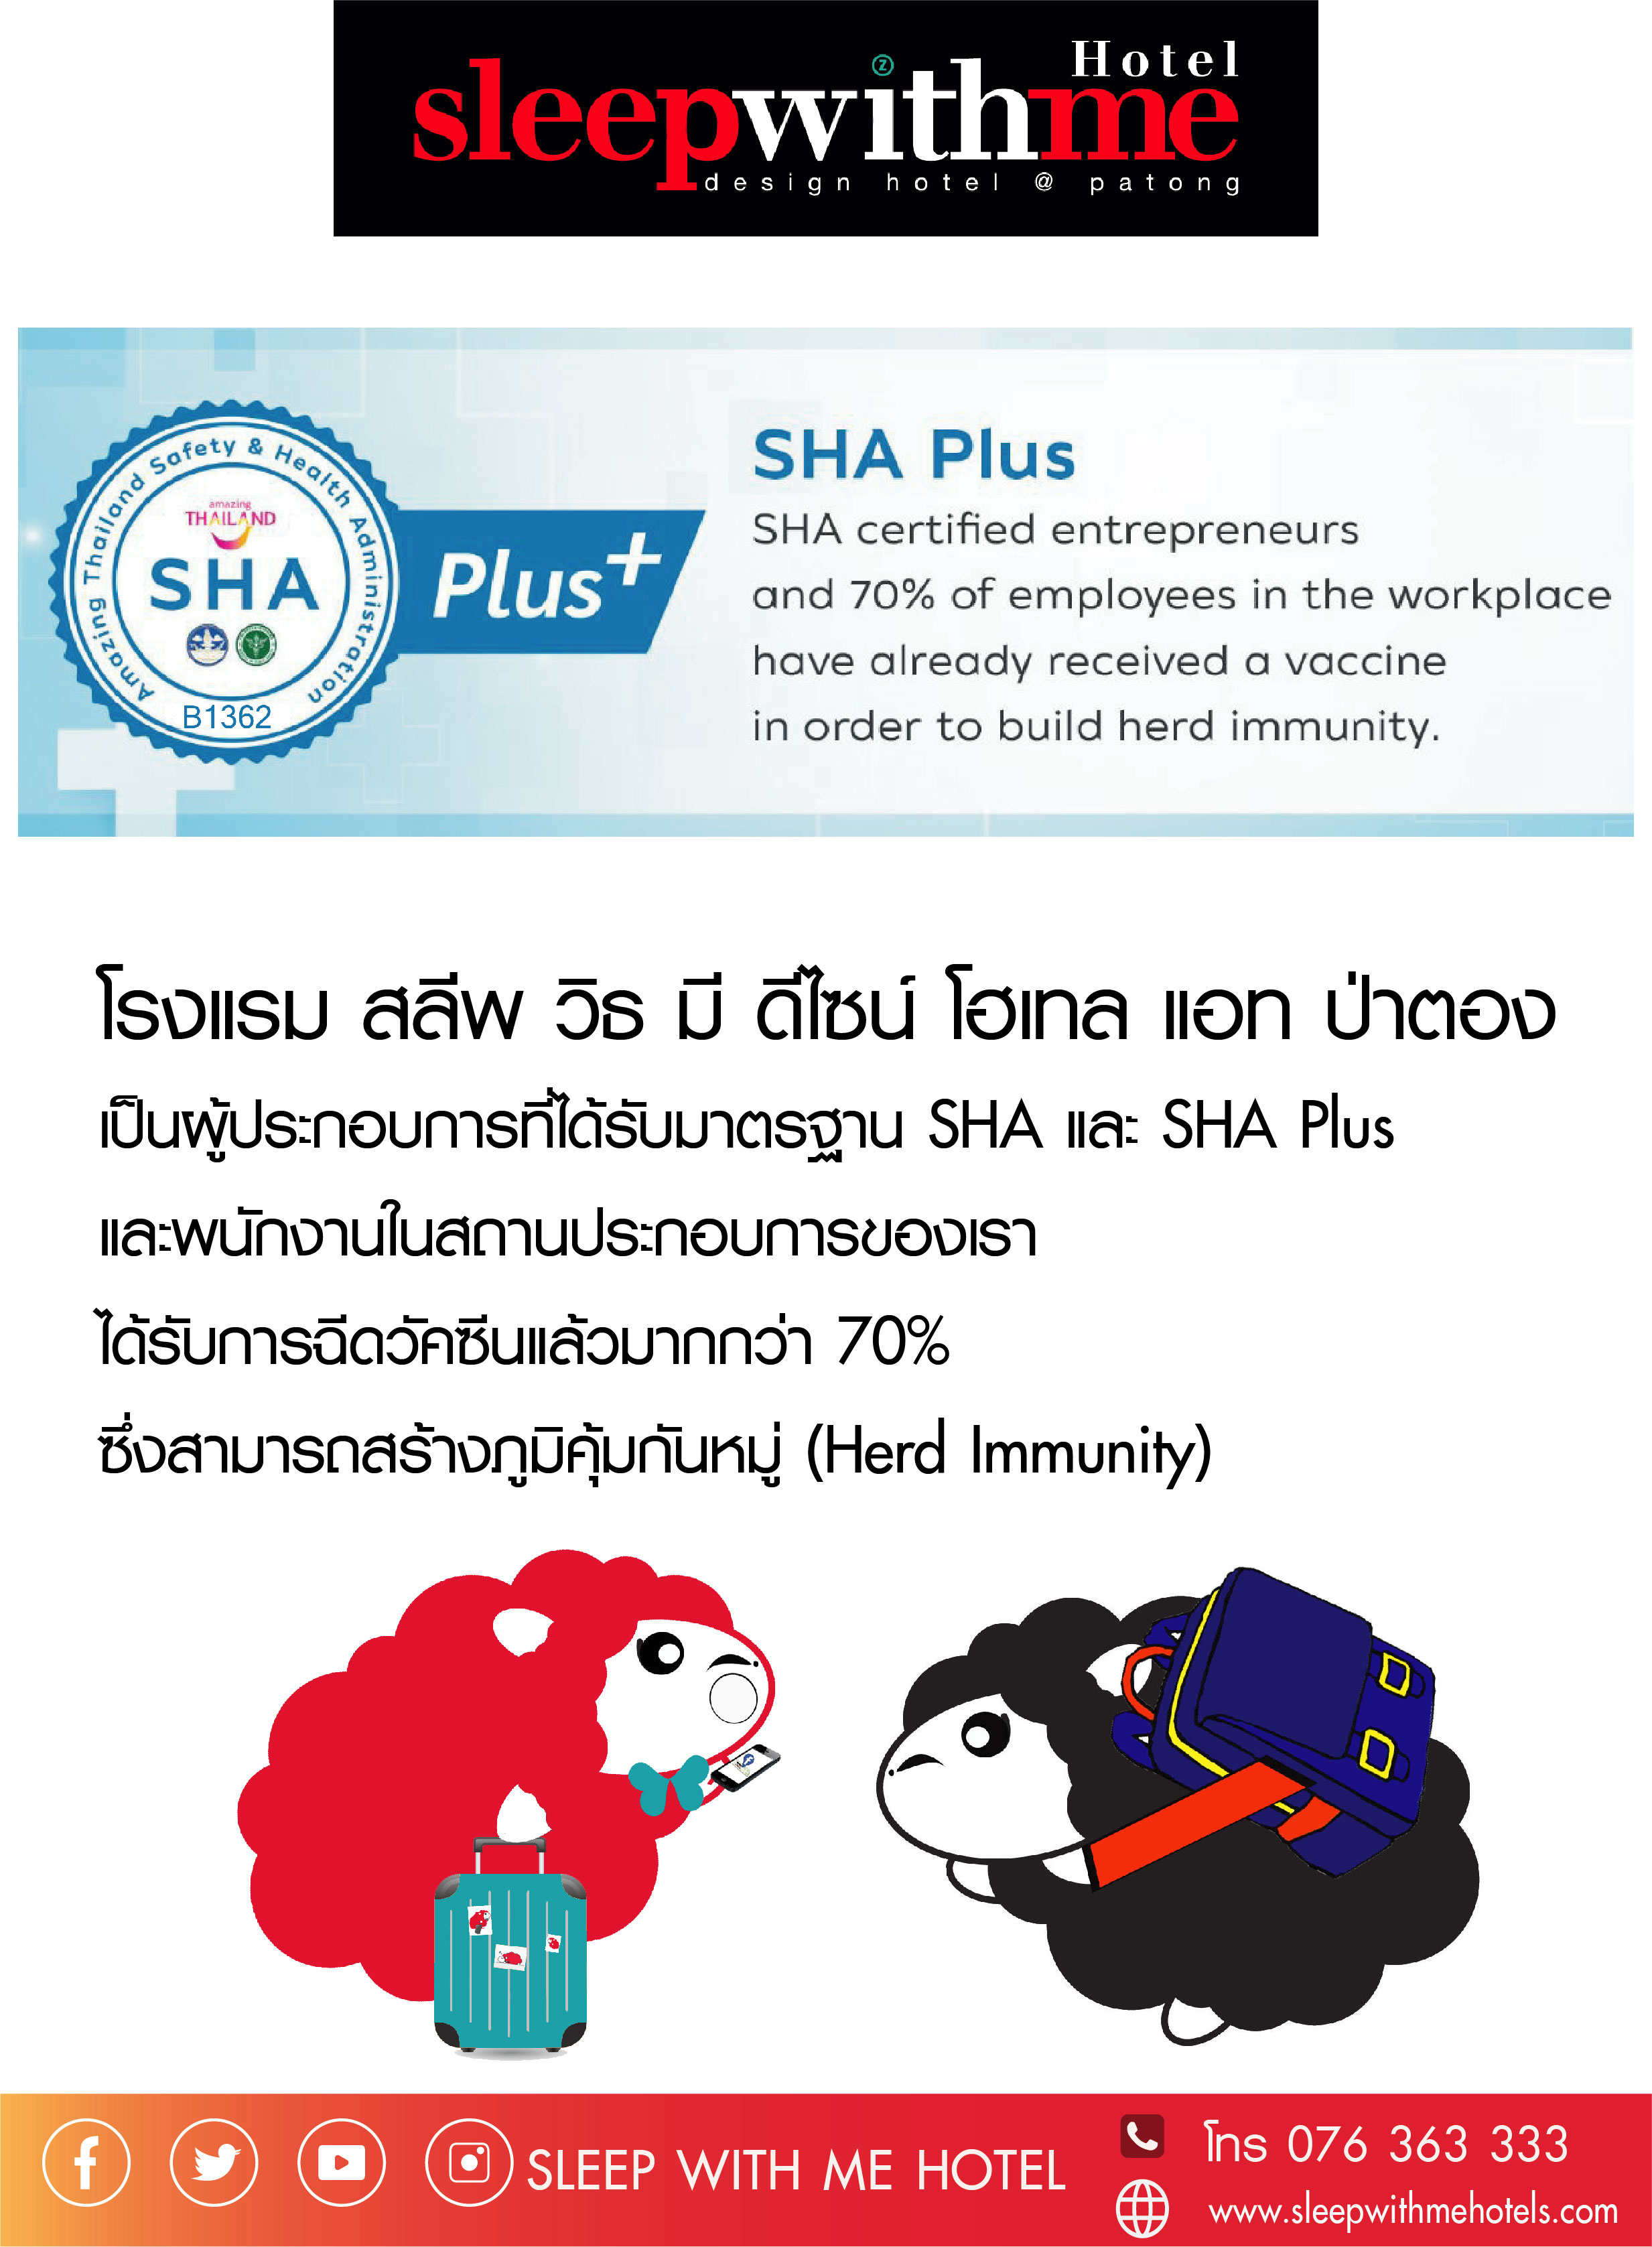 We are ready!!! SHA Plus certified